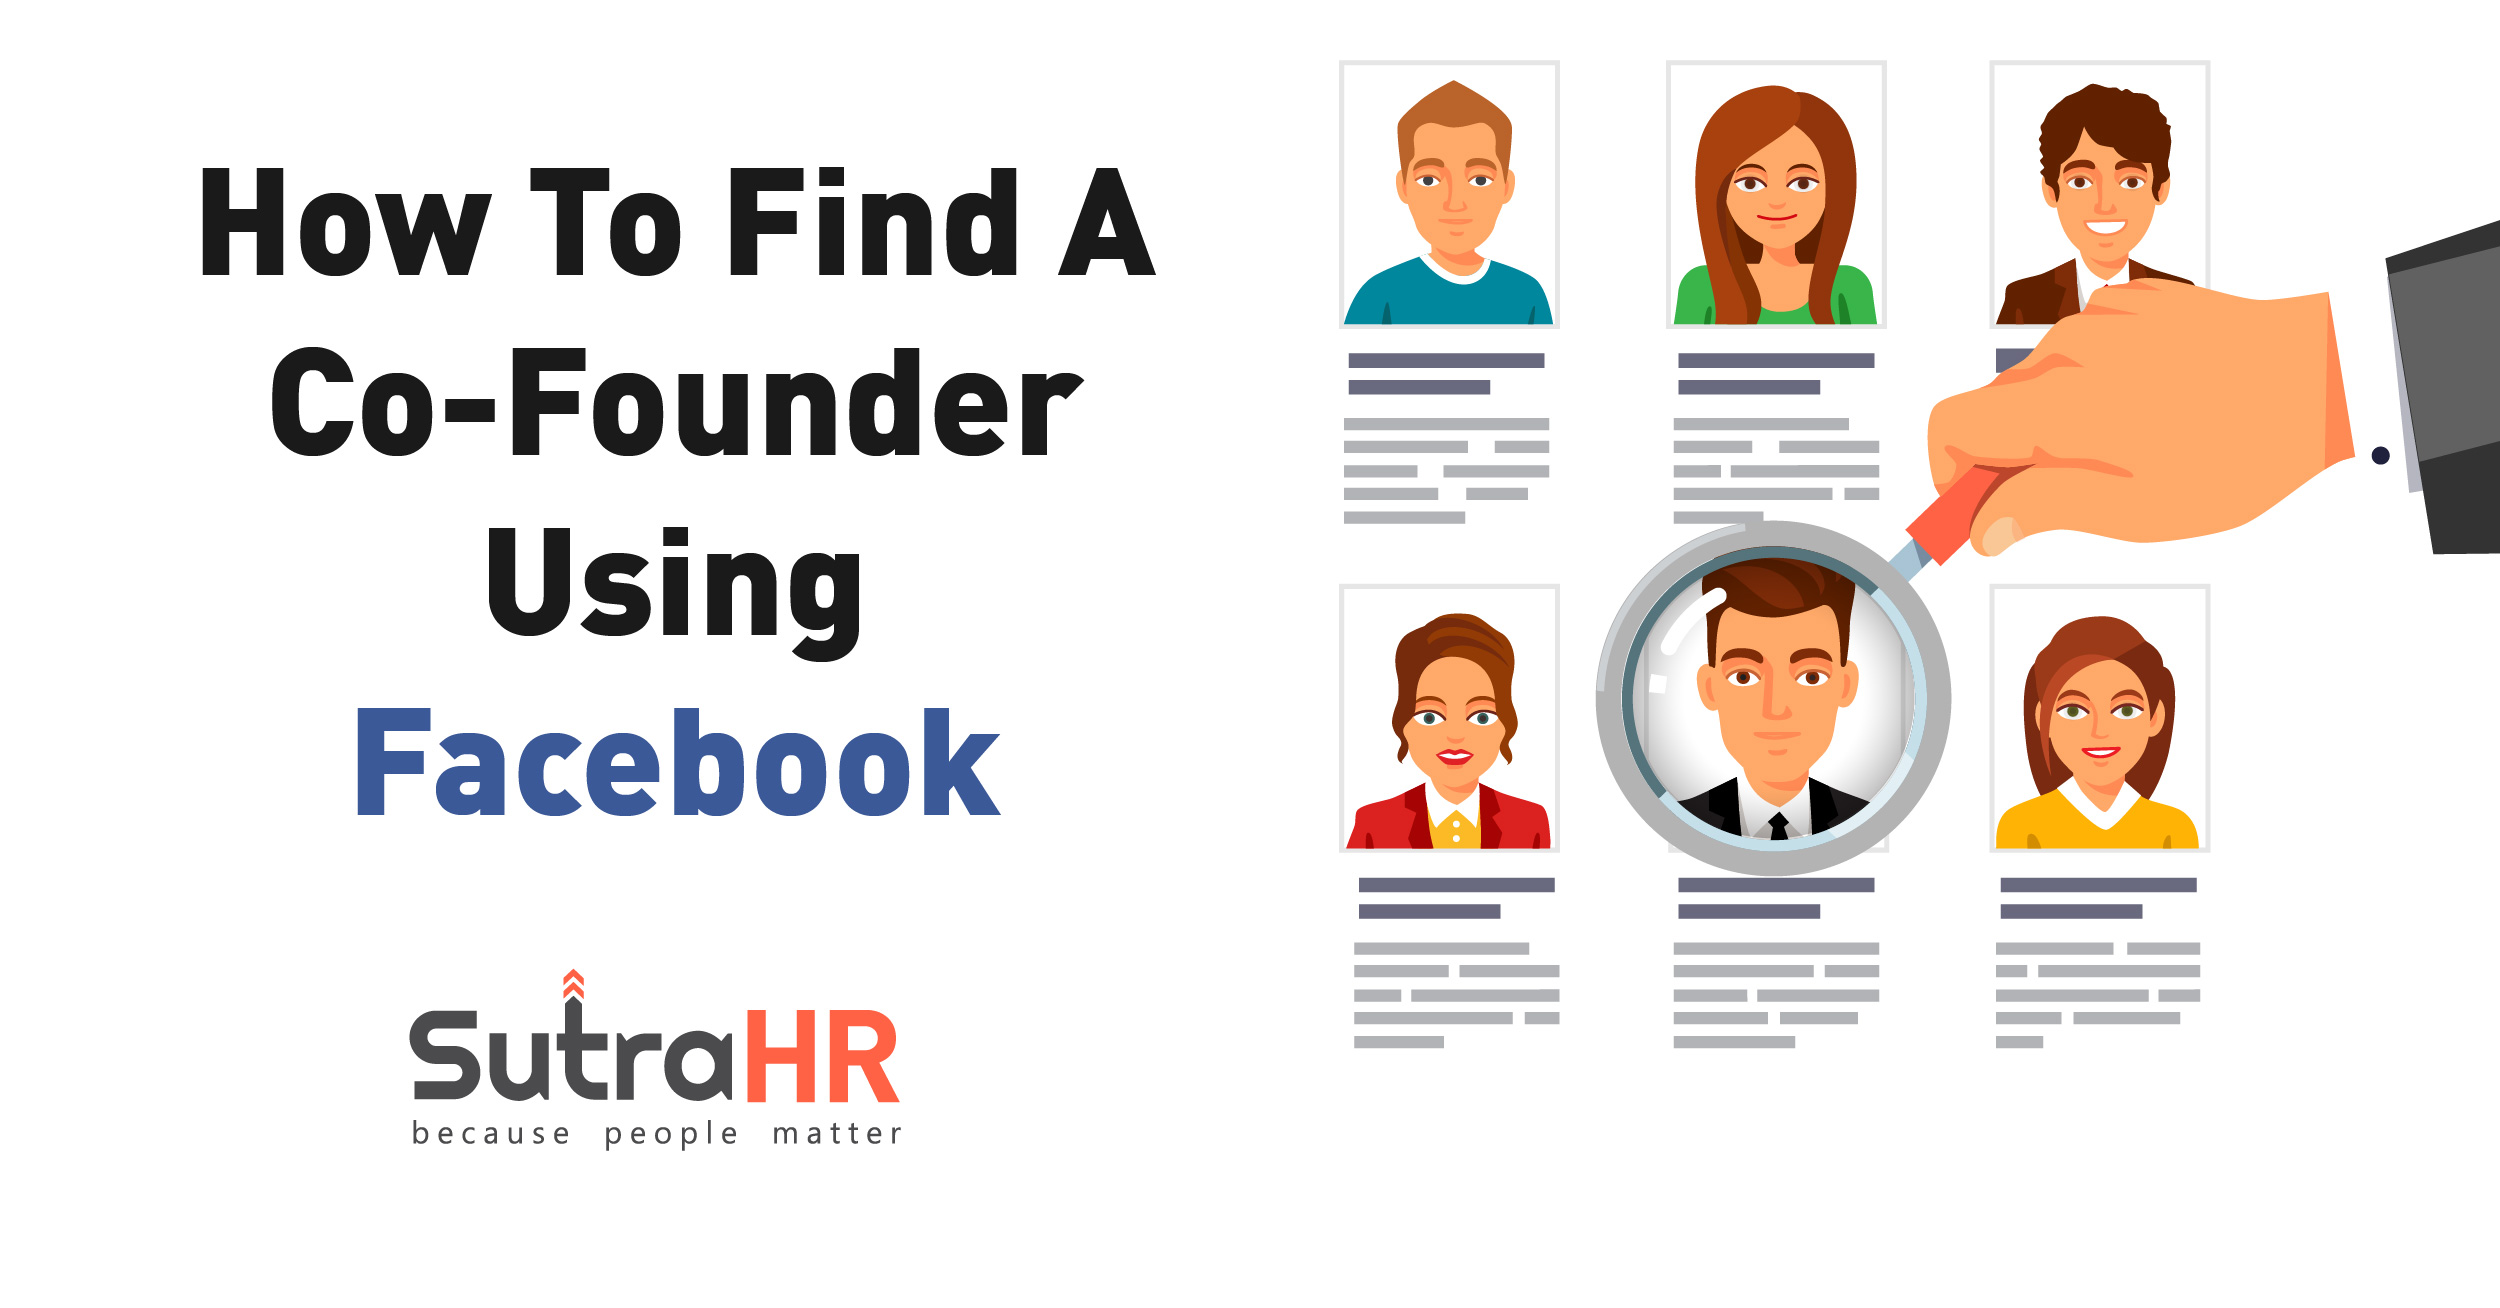 how to find a co-founder